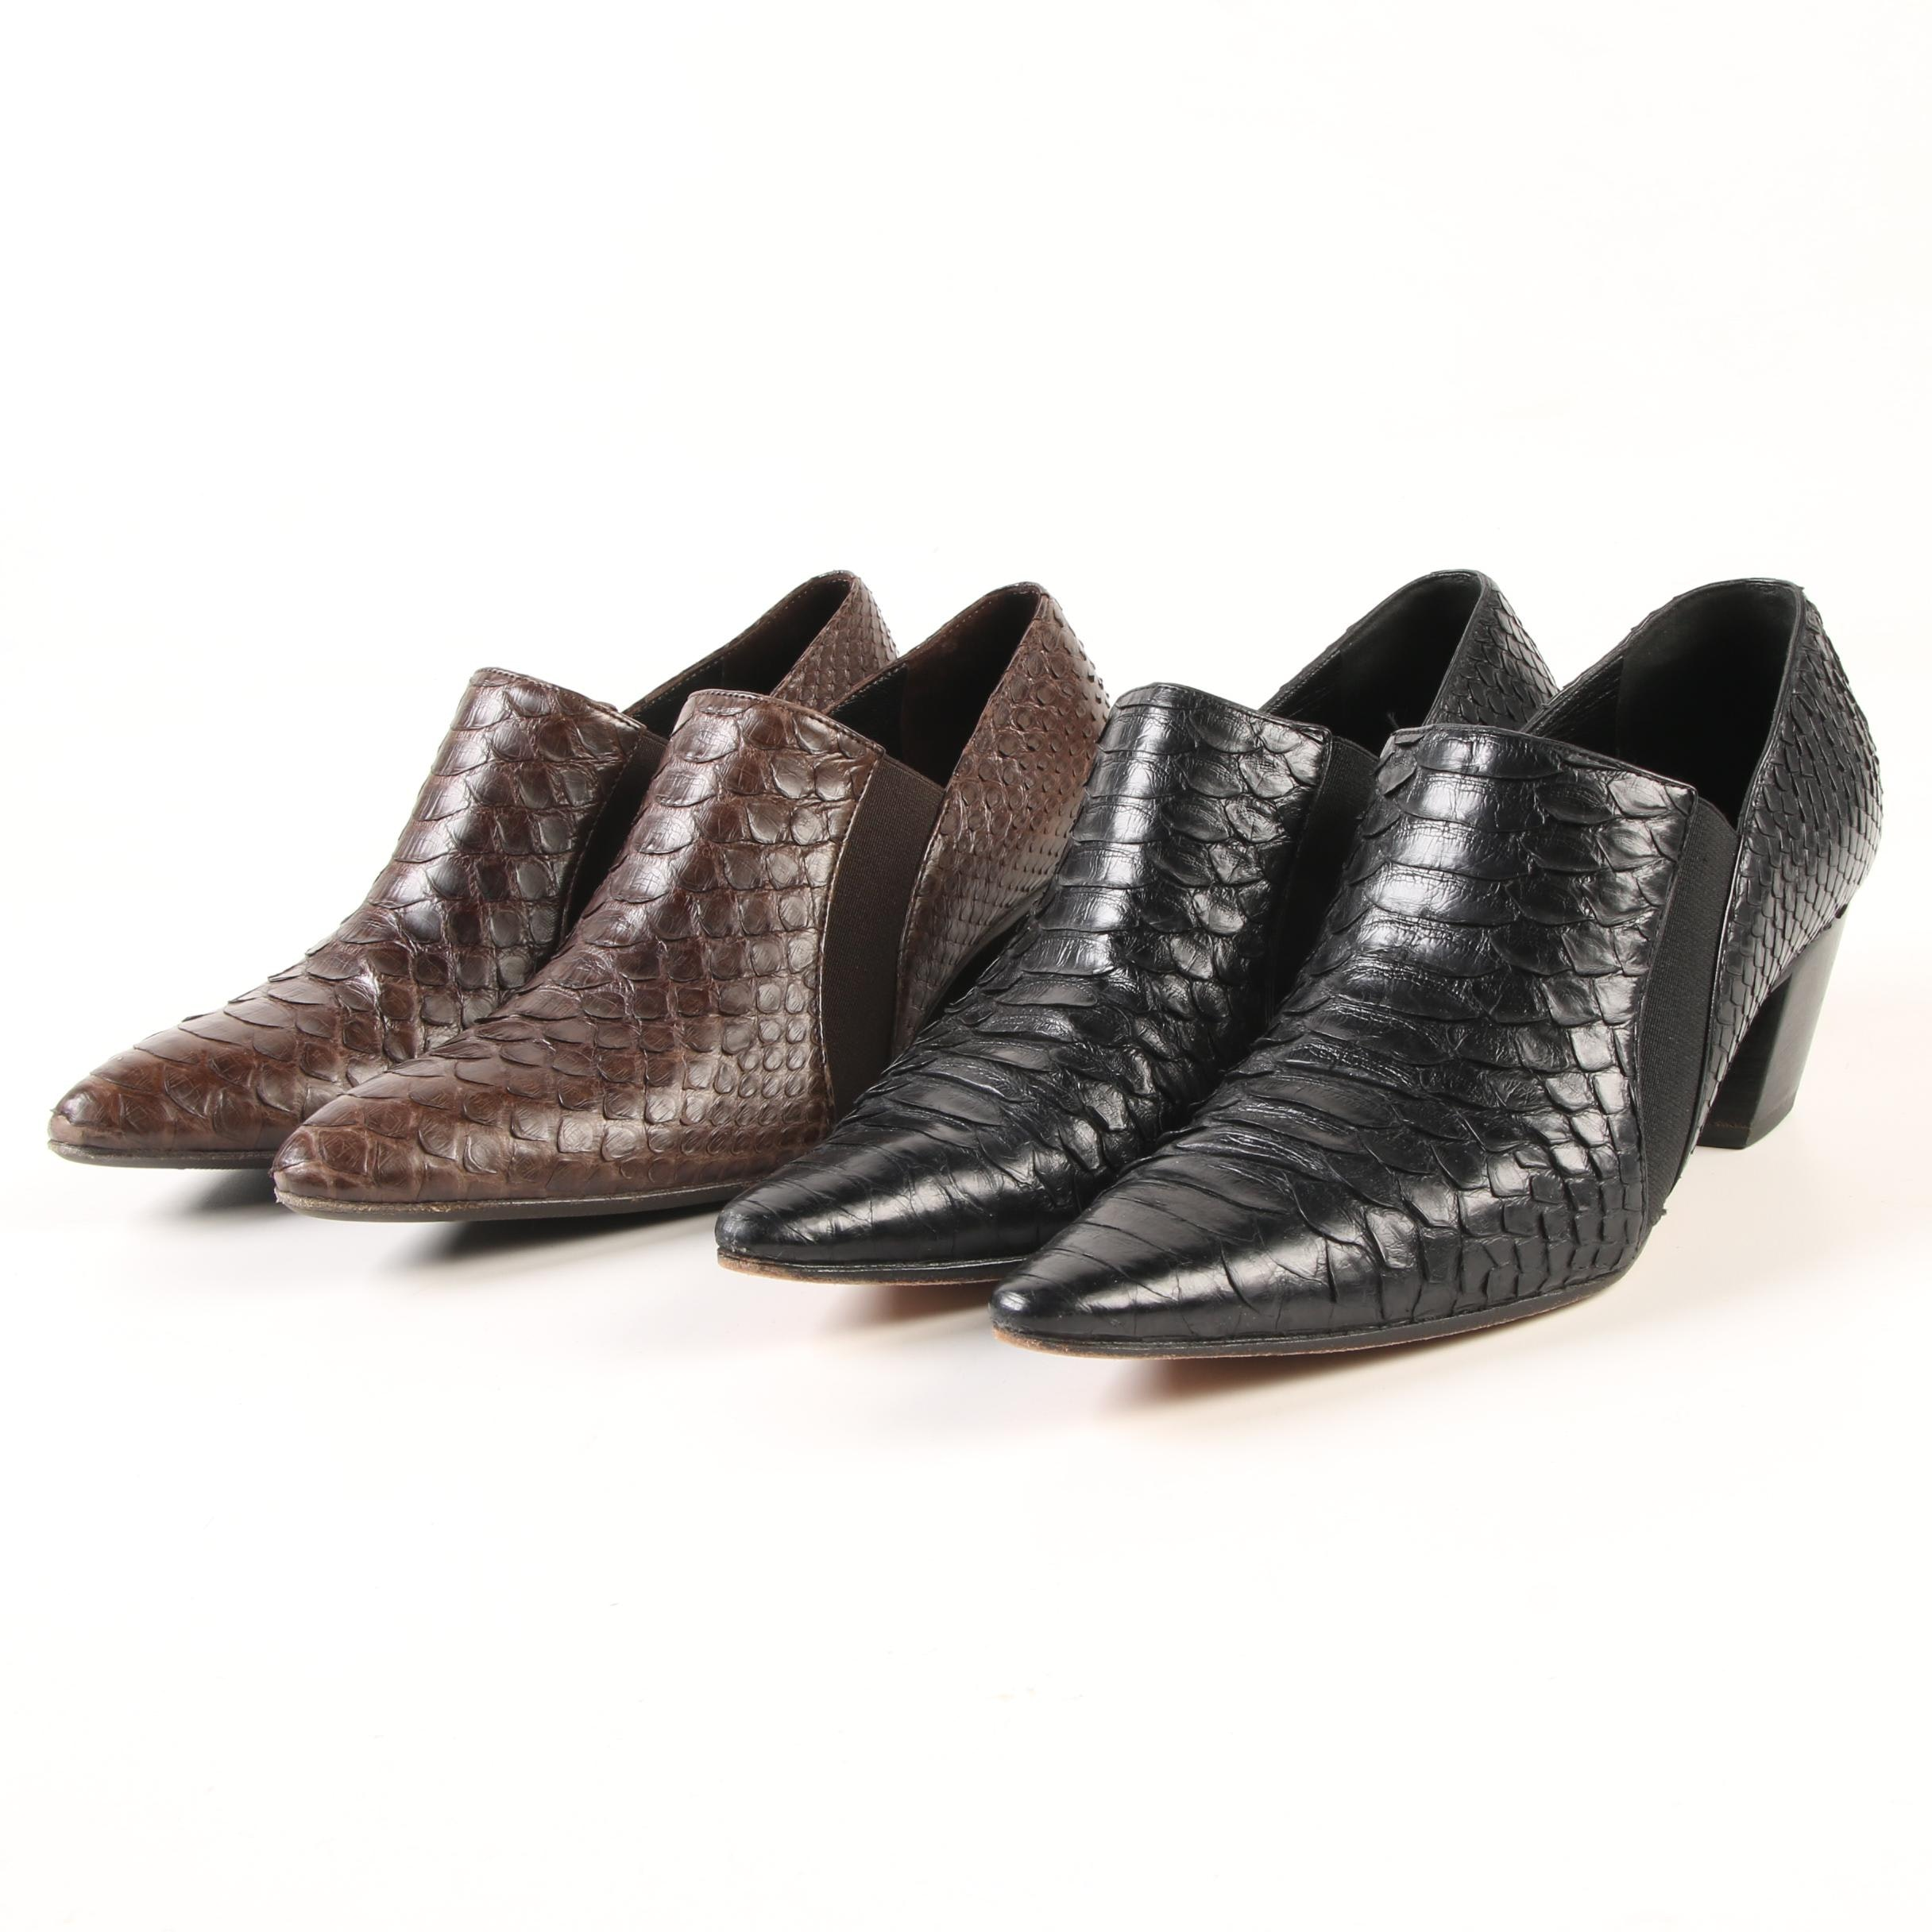 Walter Steiger Dyed Brown and Black Python Skin Pointed Toe Booties